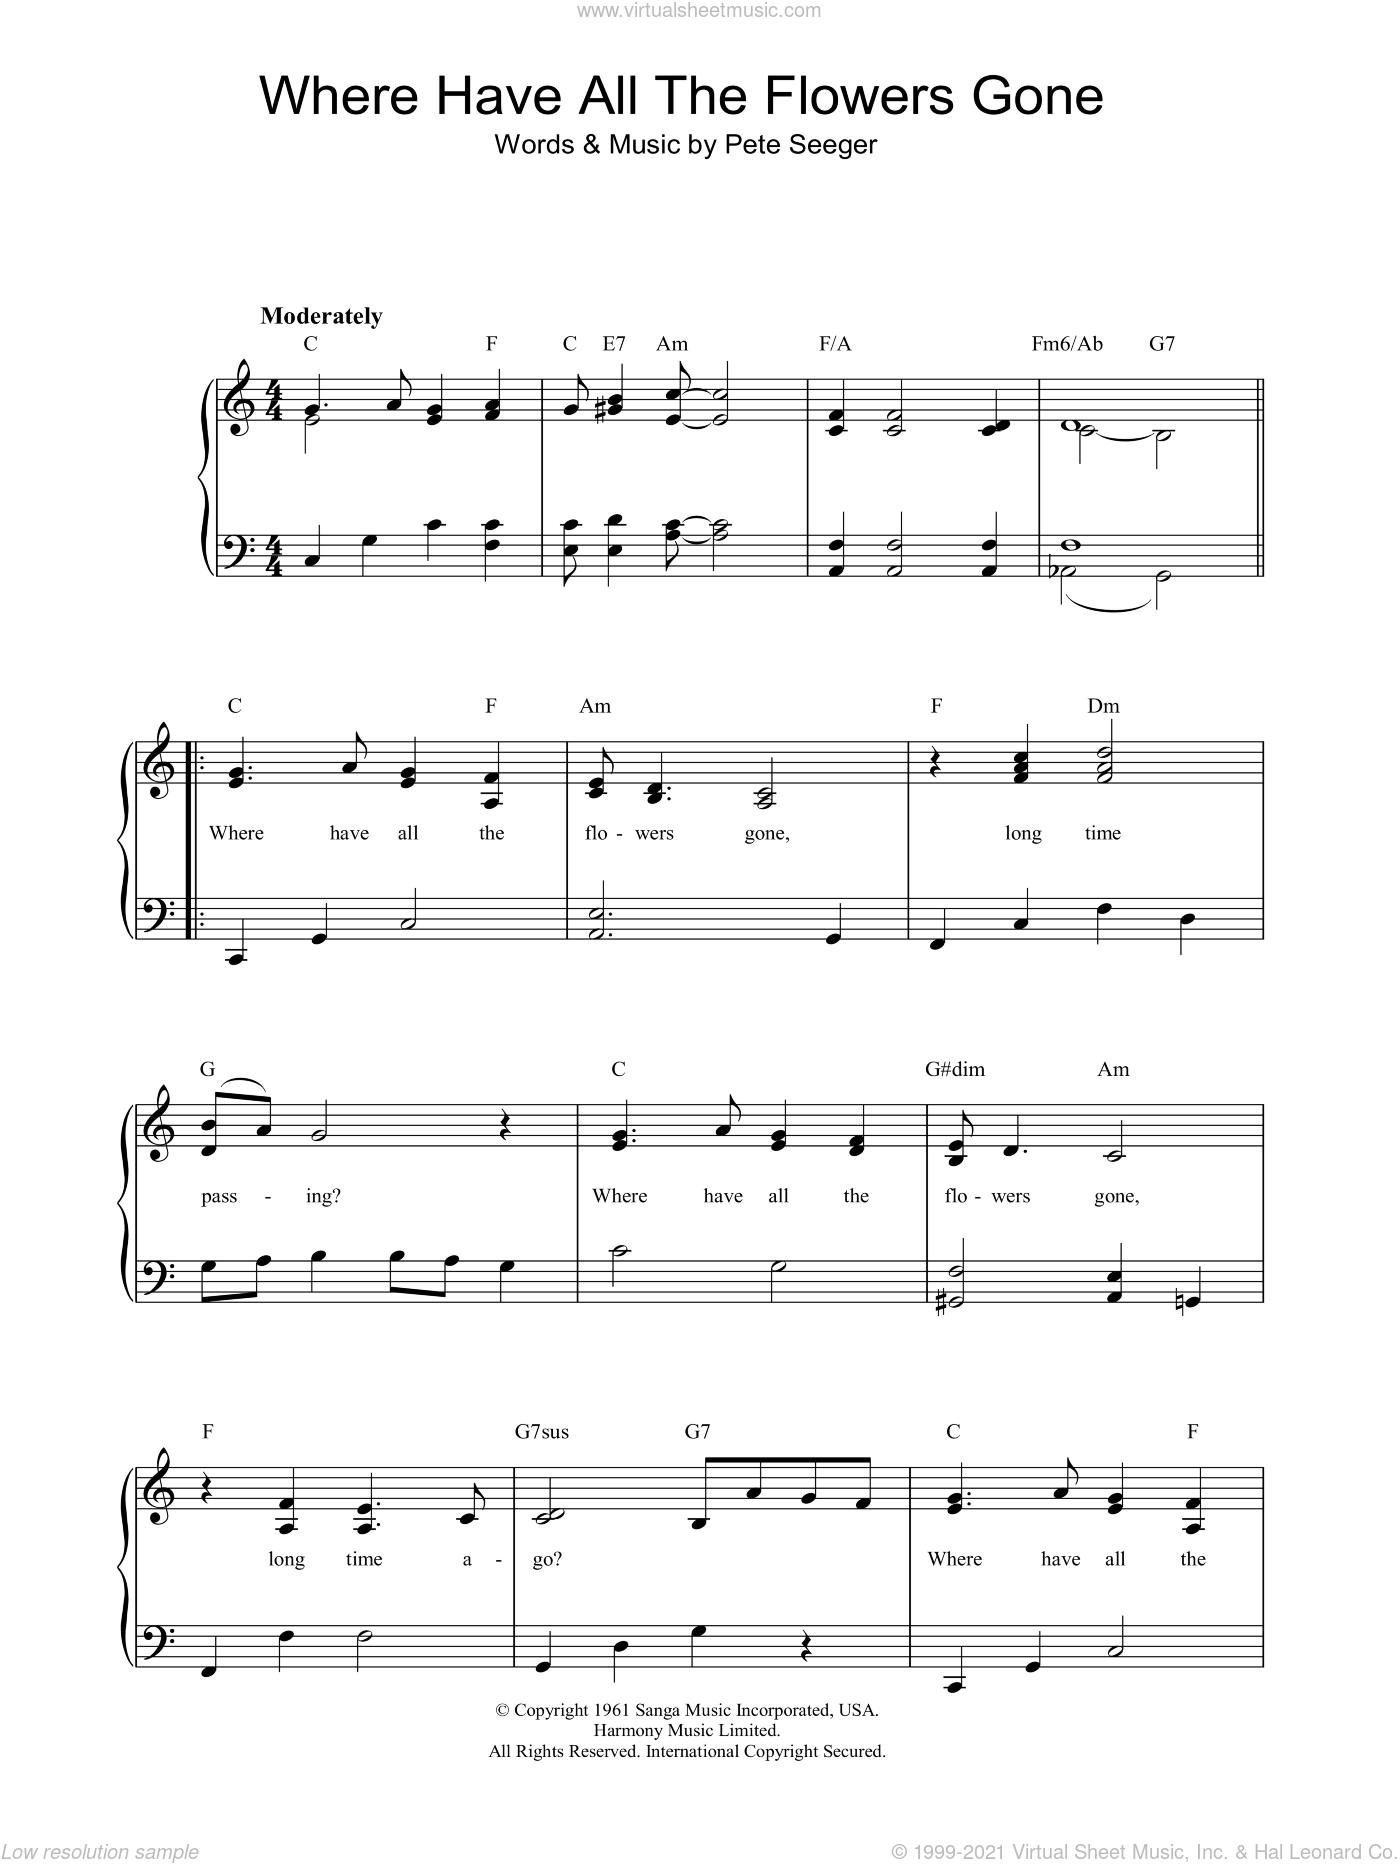 Where Have All The Flowers Gone sheet music for piano solo by Marlene Dietrich and Pete Seeger, easy skill level